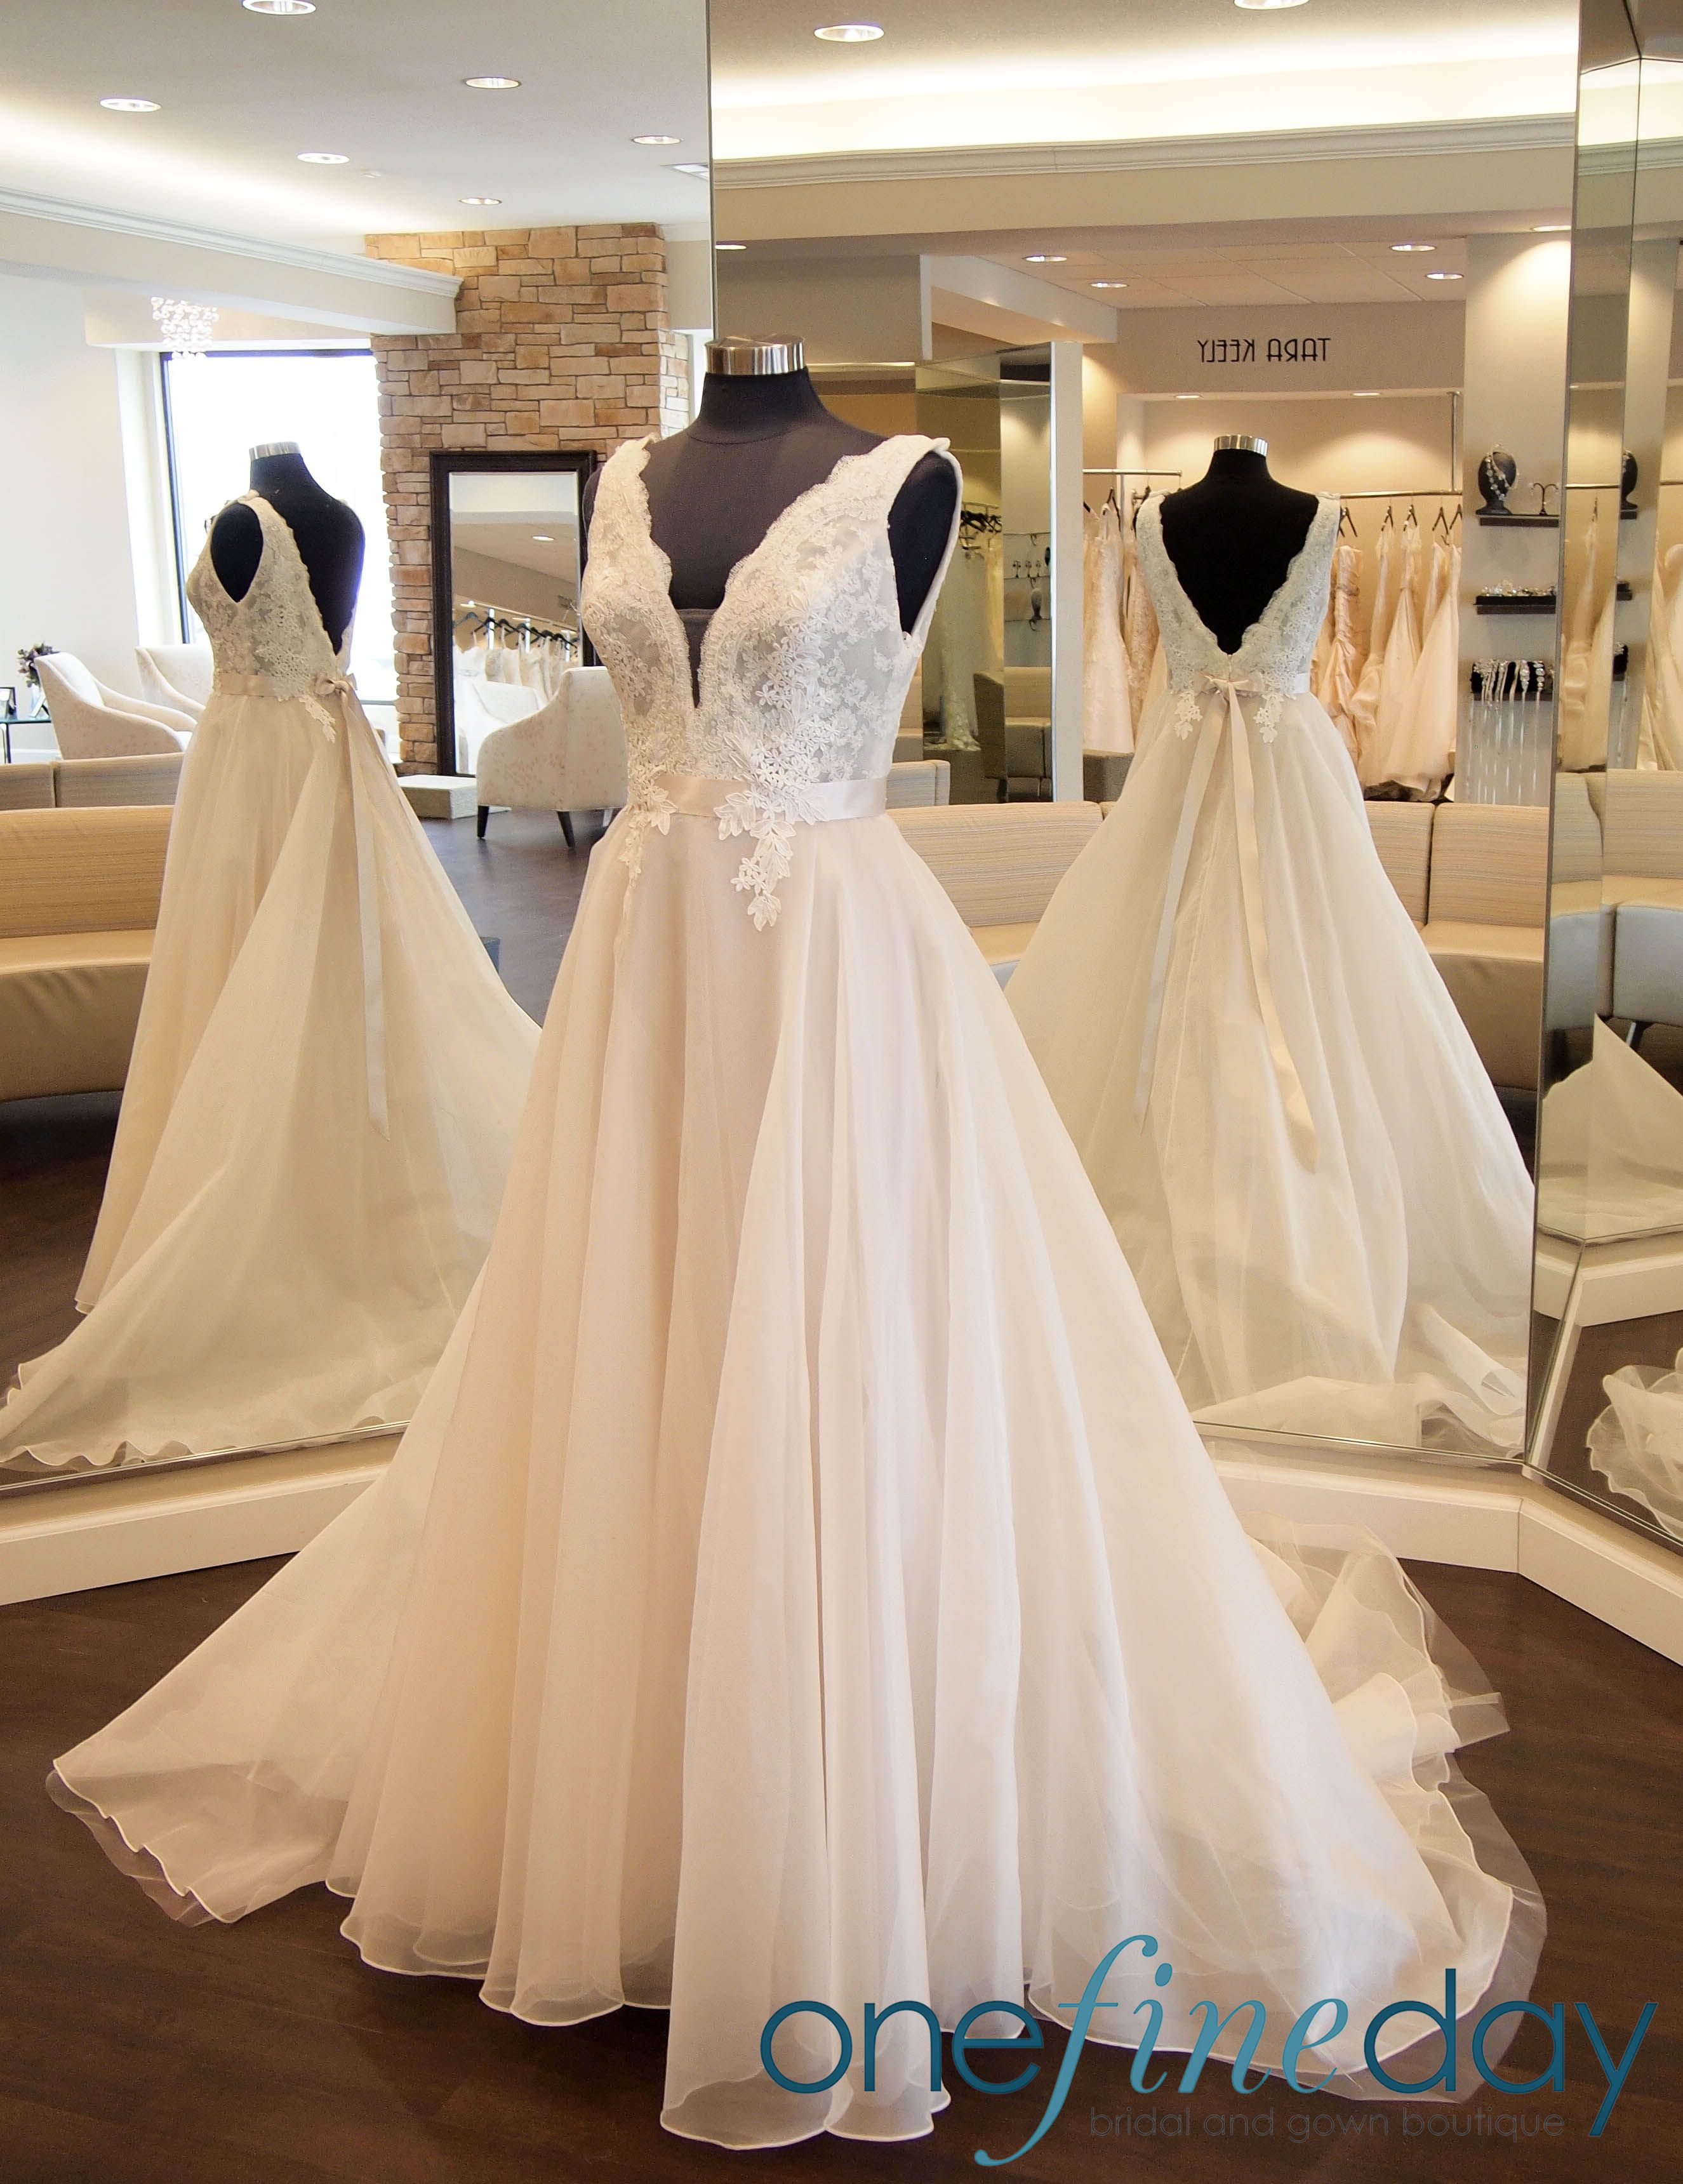 Top dresses to wear to a wedding  Tara Keely  is an organza ballgown with lace bodice She